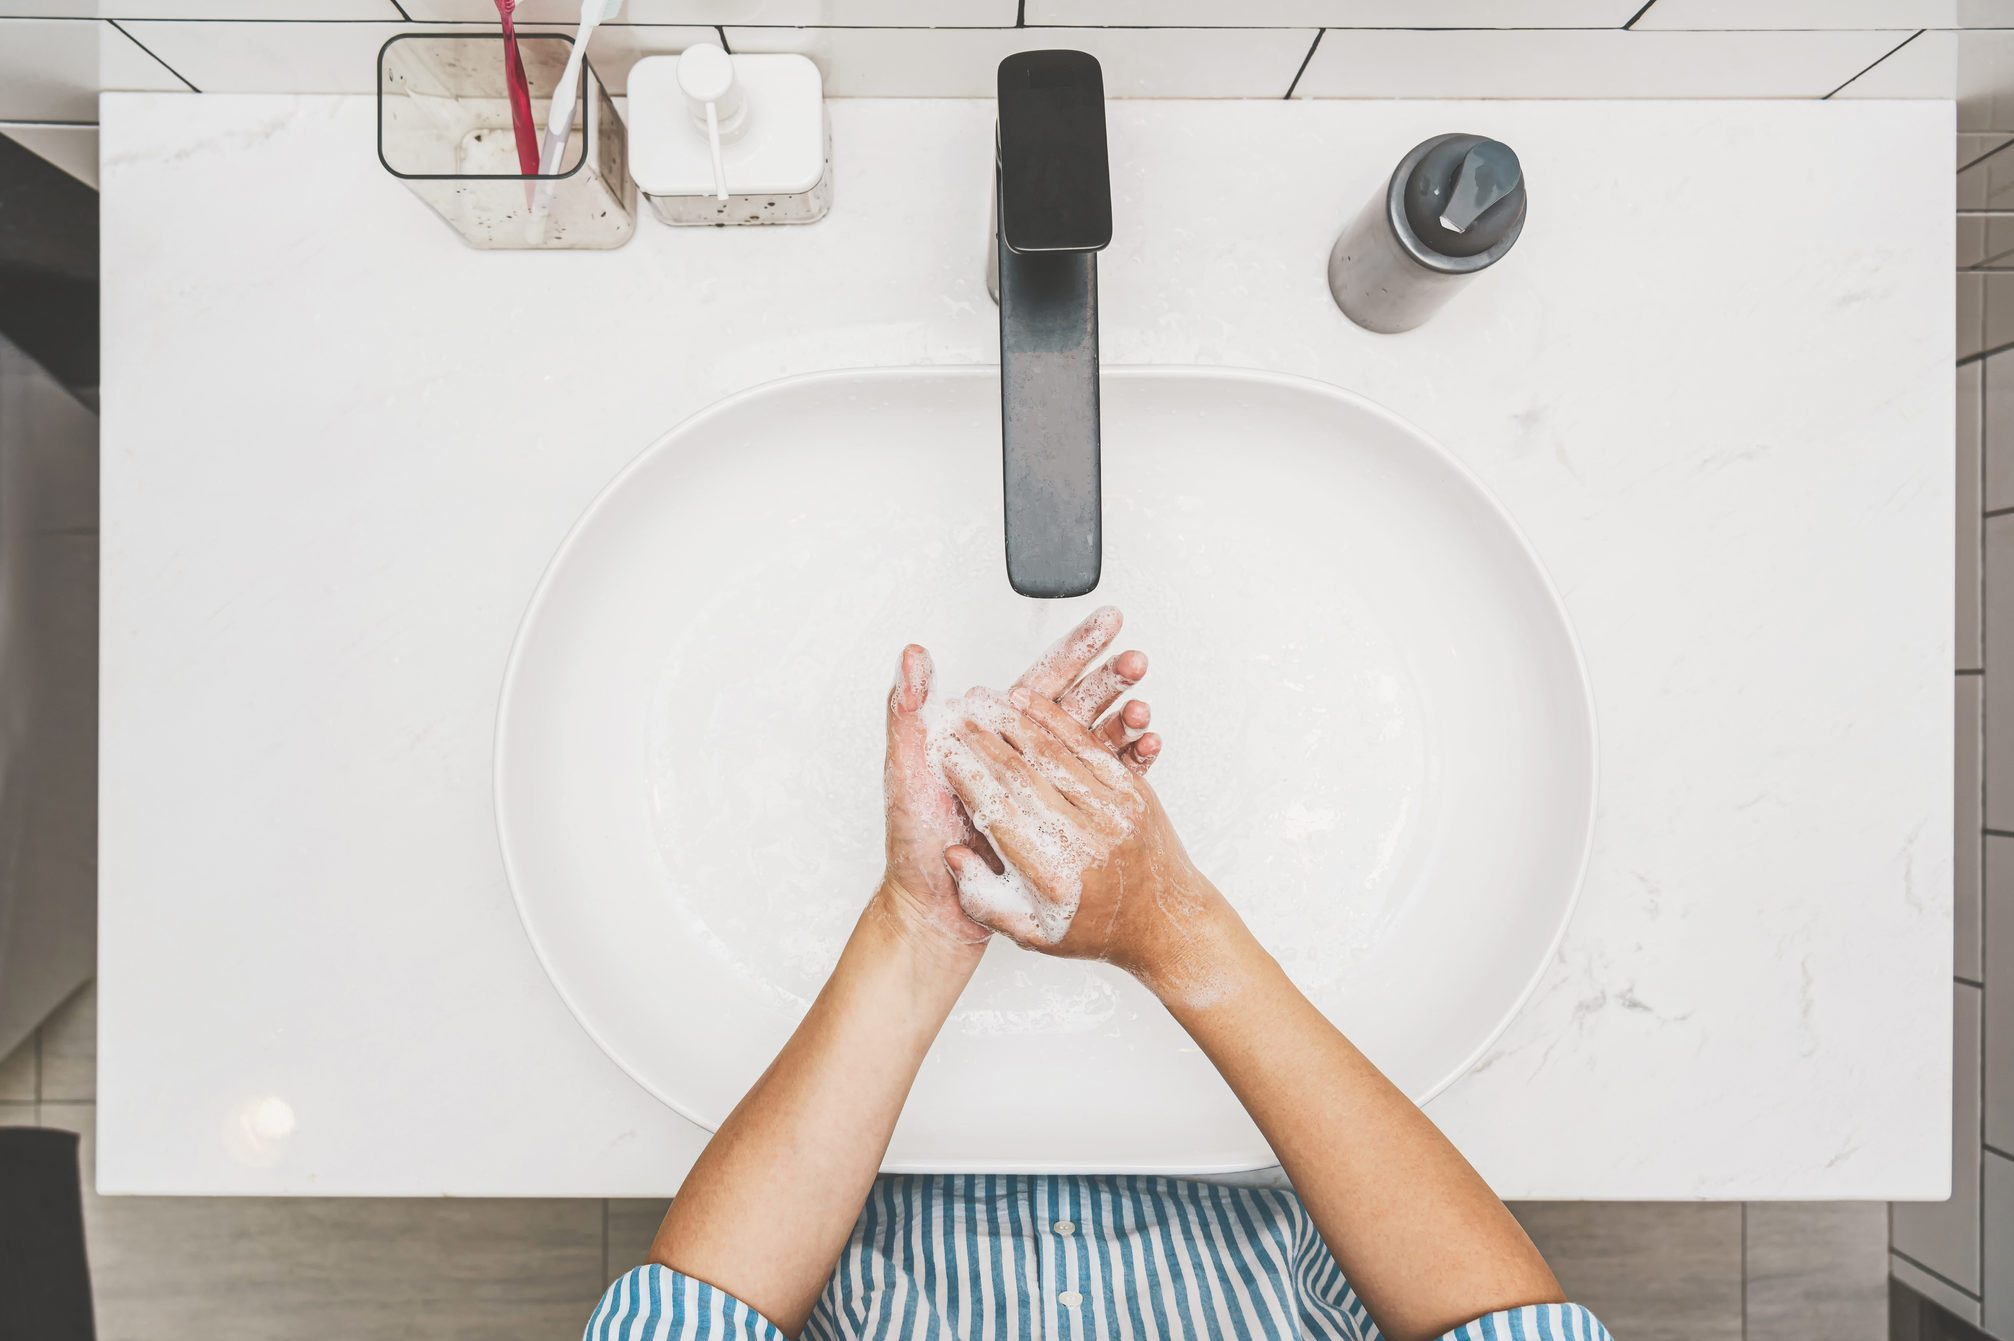 Top view Asian hand washing with faucet water in Bathroom at home